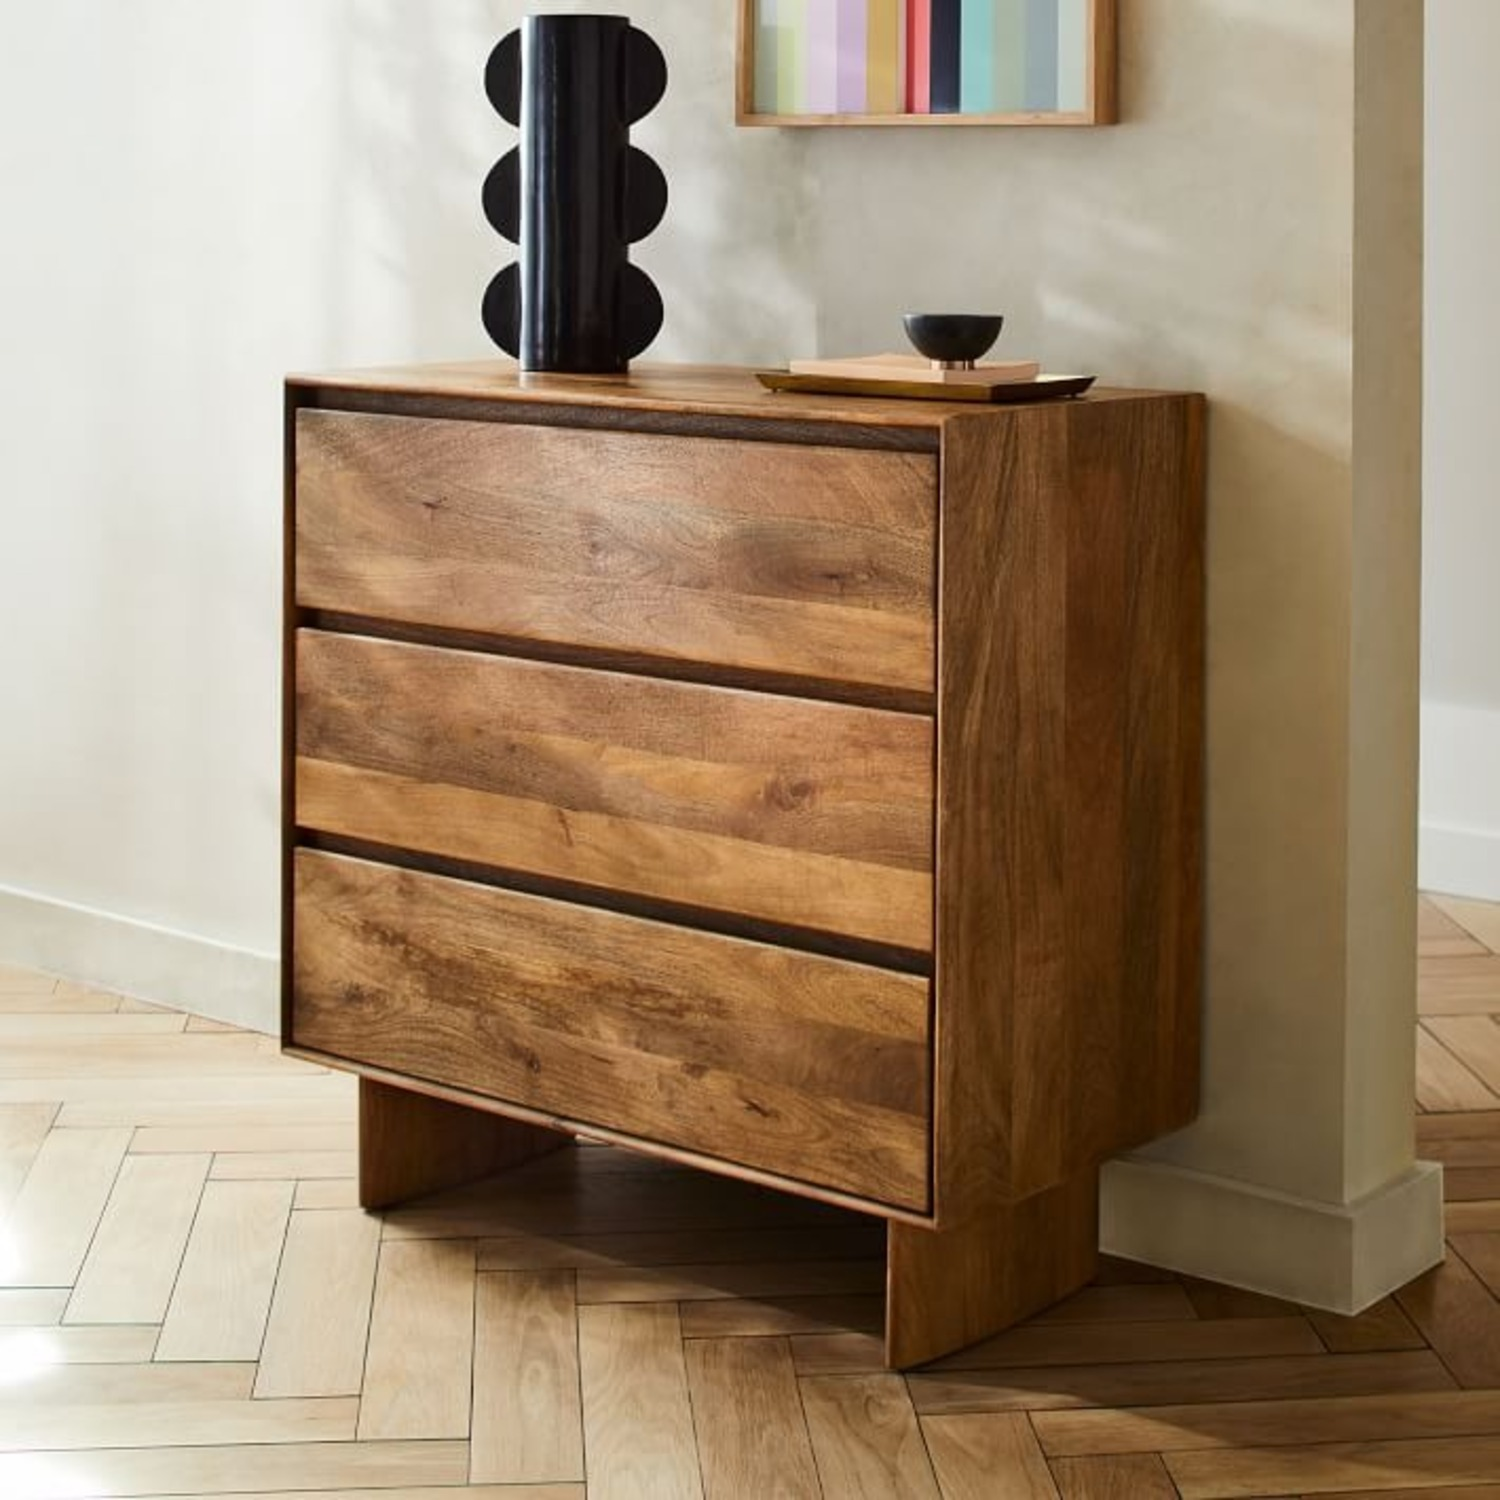 West Elm Margo Selby Colorblock Lacquer Wall Art - image-1